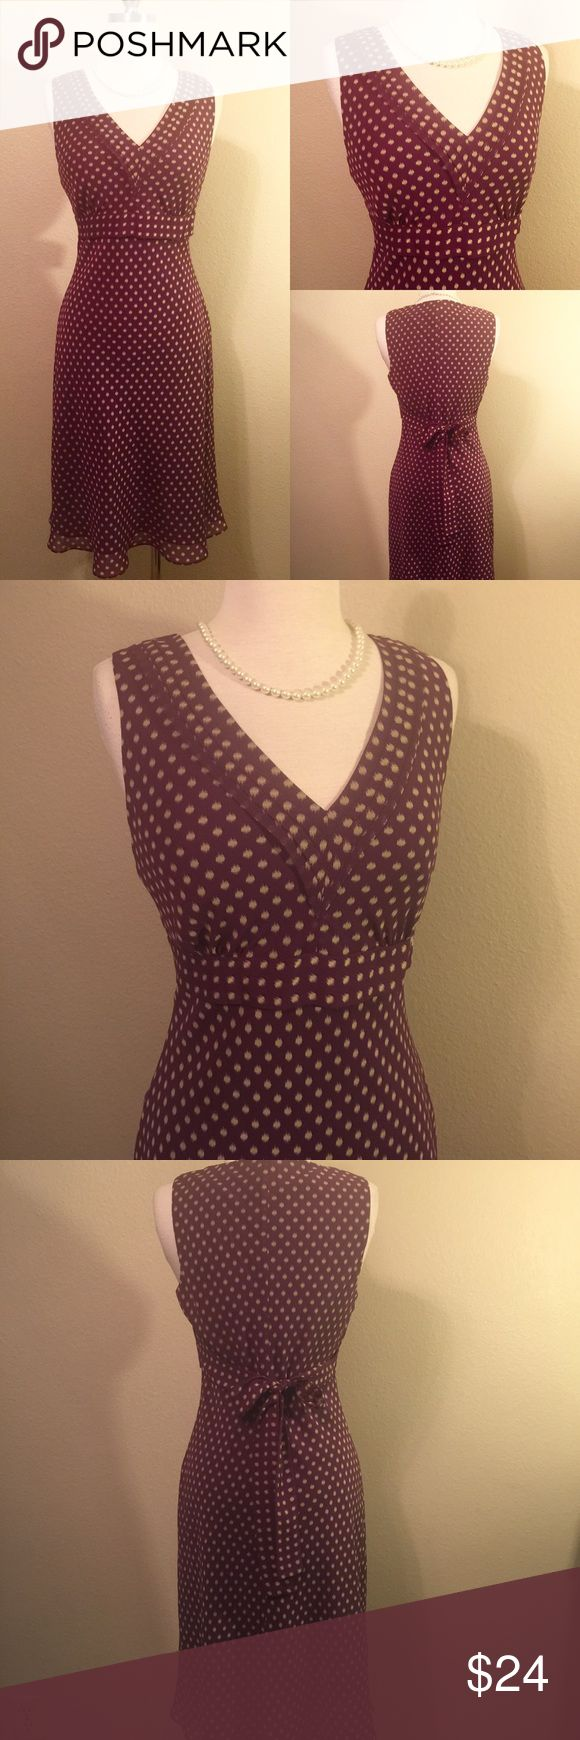 Ann Taylor Dress Ann Taylor Petites Dress Size: 8P  B:18'  W:15.5' H:18' L:39'  Beautiful burgundy Ann Taylor petites dress.  Sleeveless with long ties that tie back to adjust to your waistline.  Side zipper. Has an old classy vintage look to it. Like new without tags. Flawless. Ann Taylor Dresses Midi